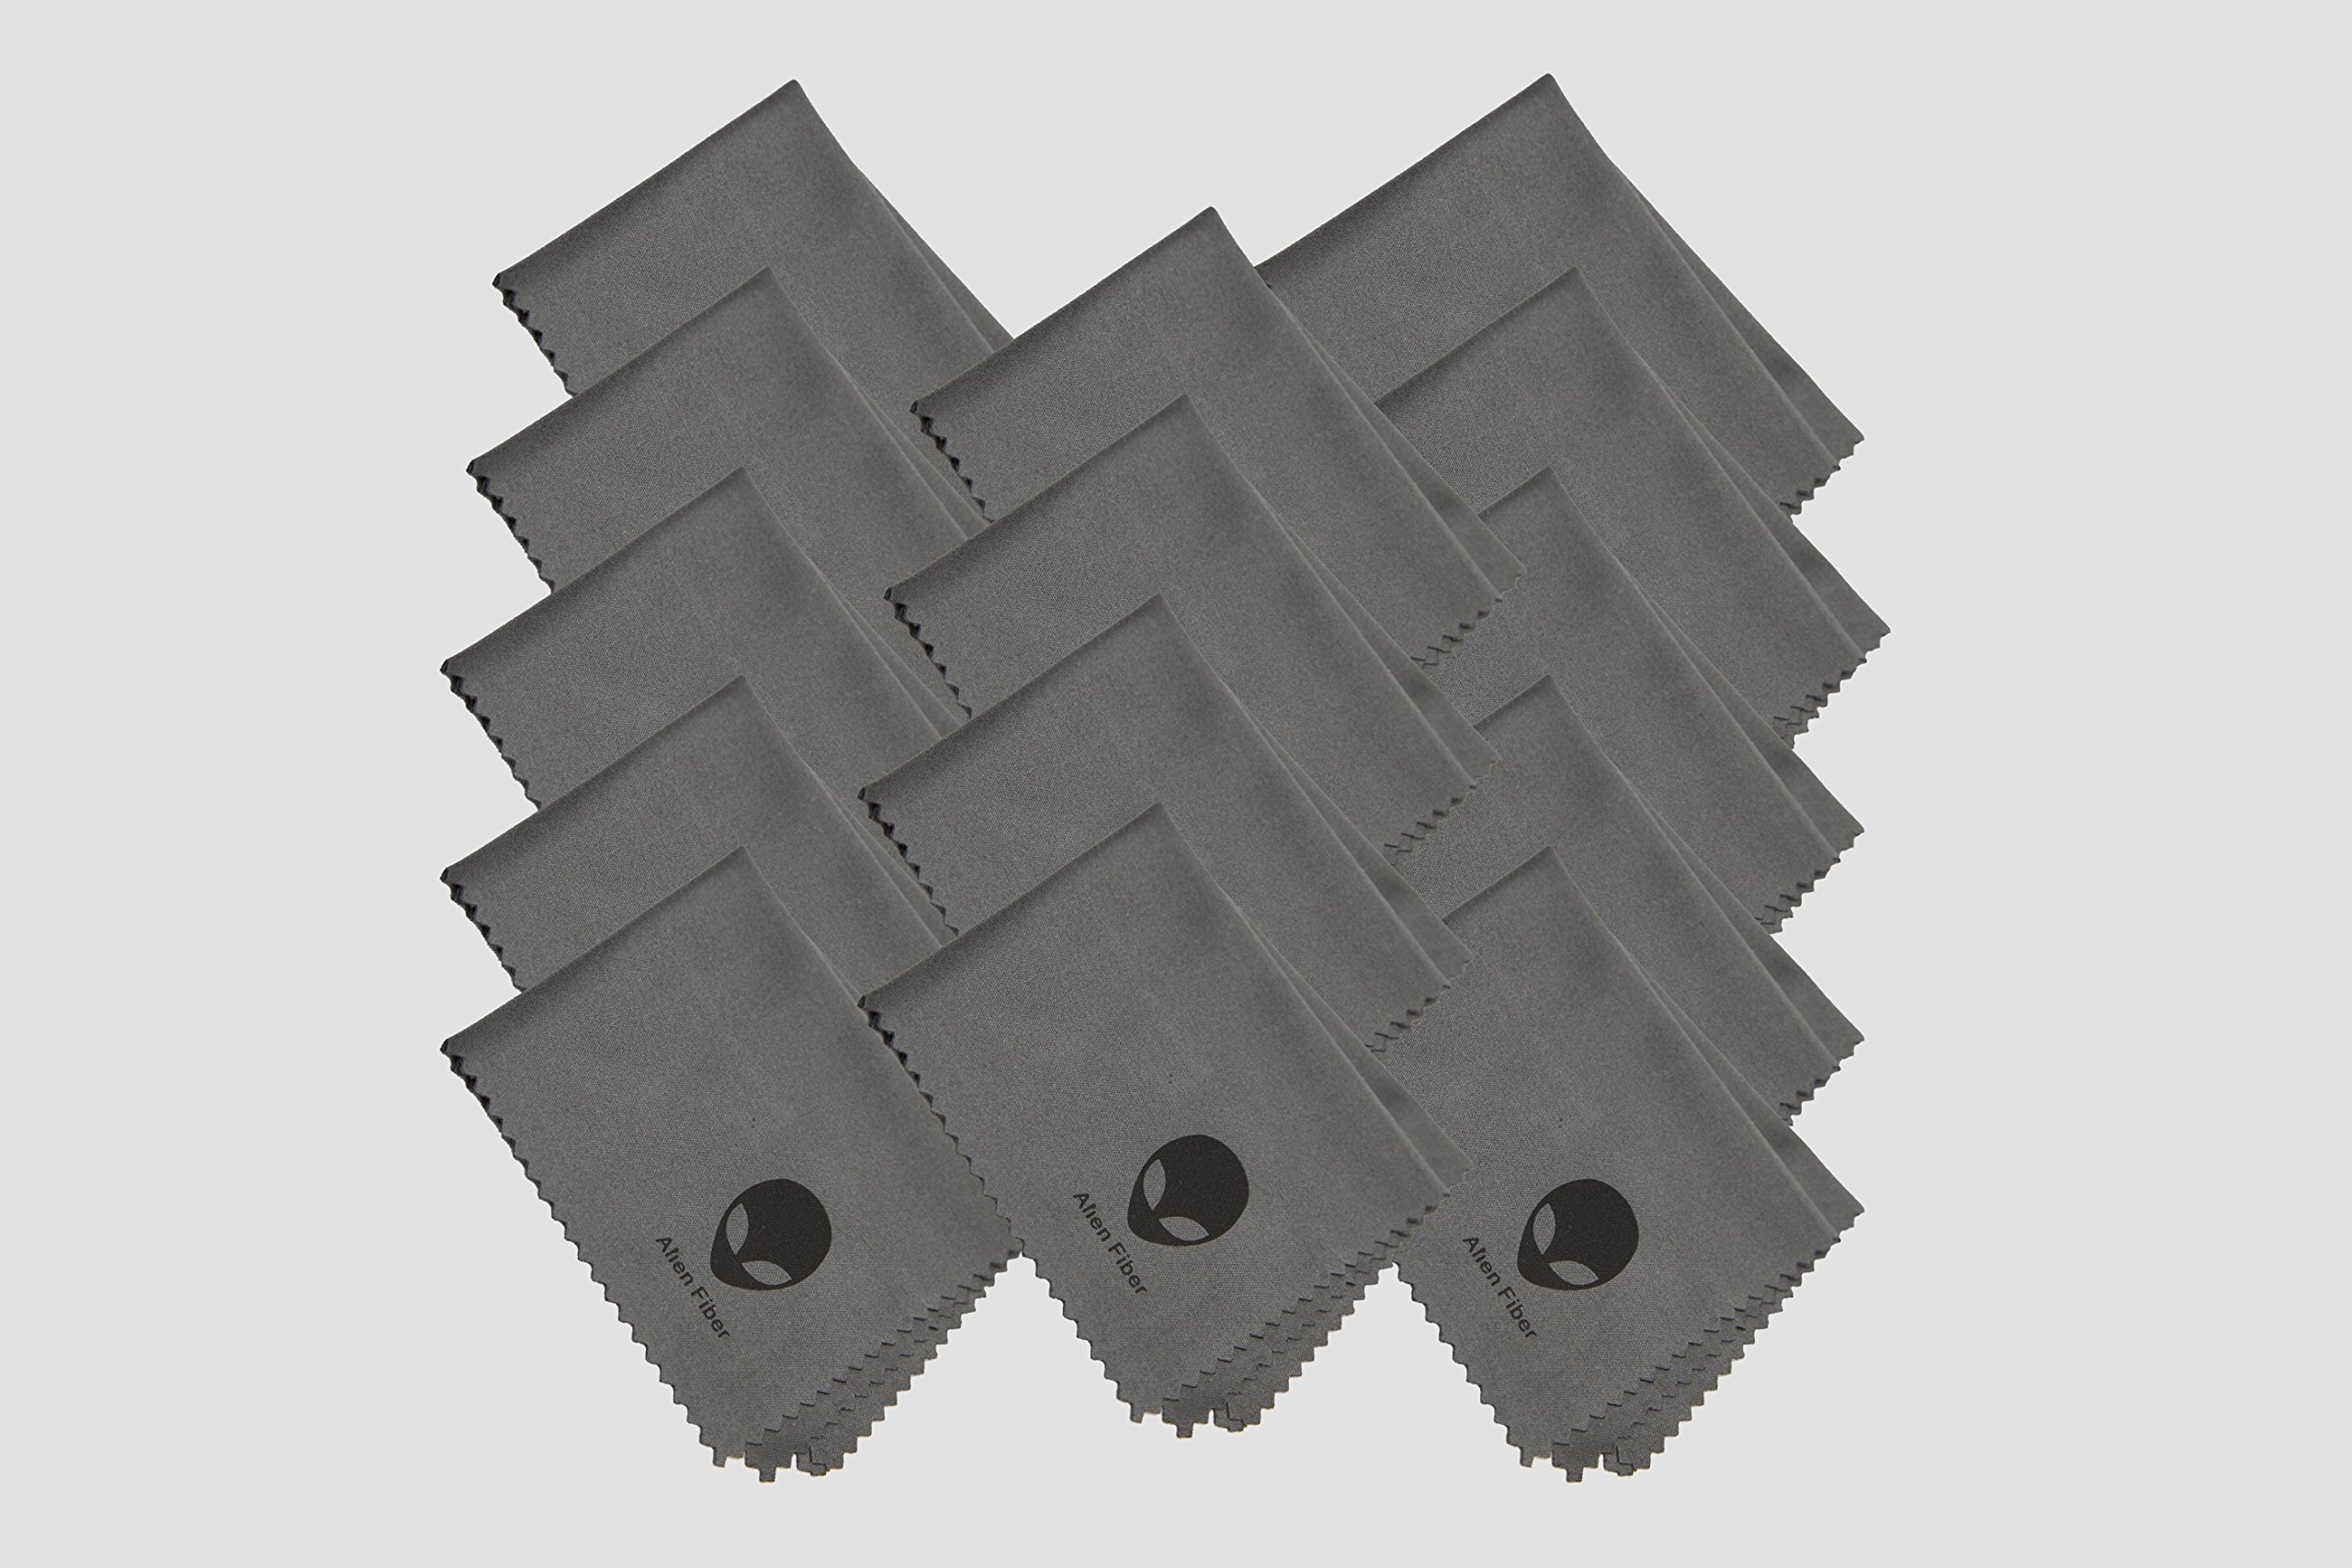 (14 PACK) Alien Fiber Microfiber Cleaning Cloths - For All LCD Screens, Tablets, Lenses, and Other Delicate Surfaces